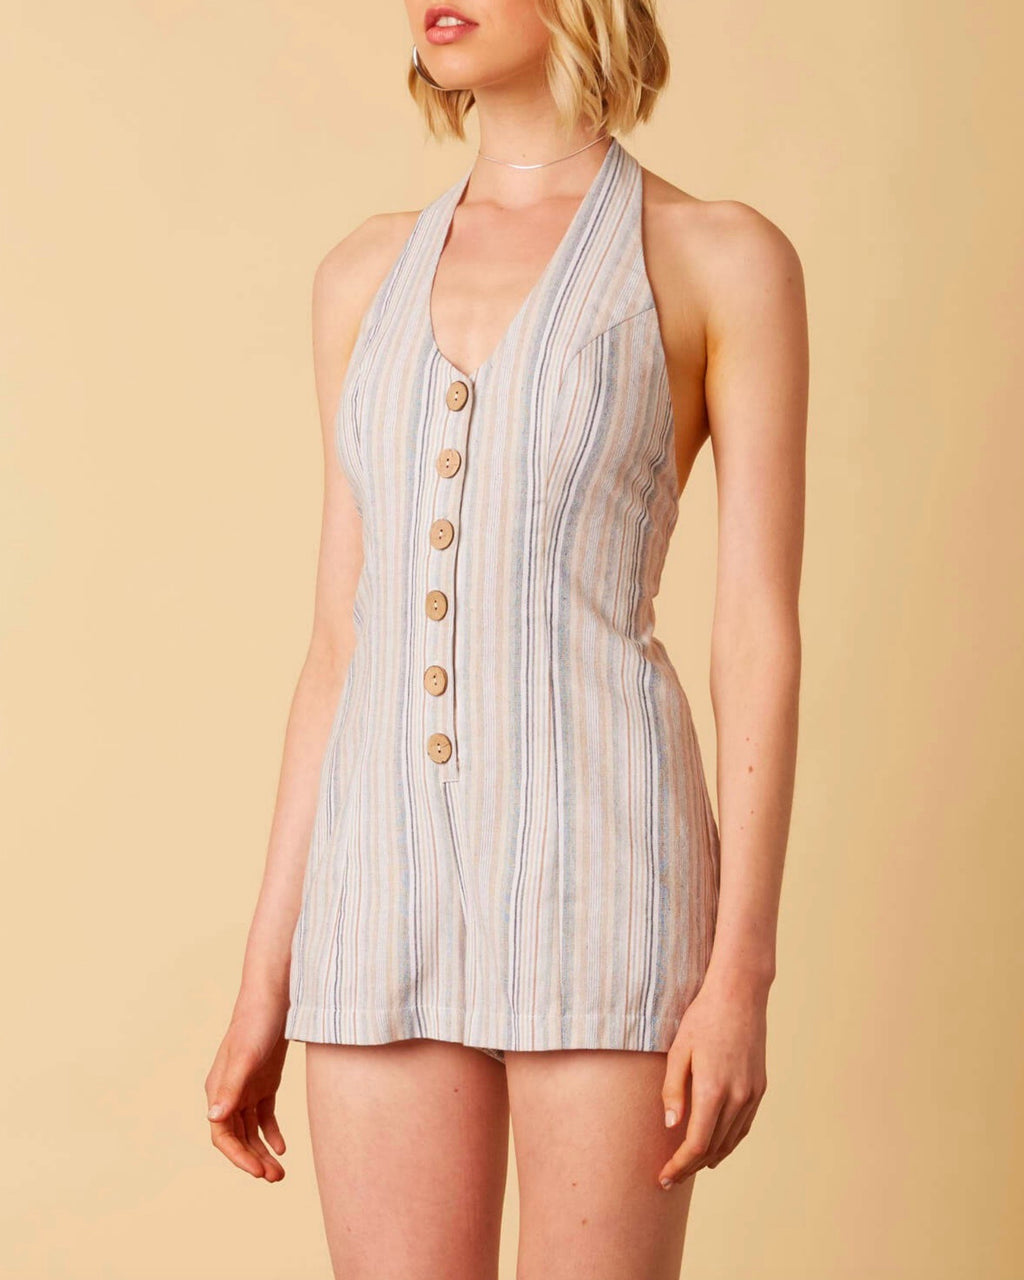 Cotton Candy - Fairgrounds Linen Romper in Sand